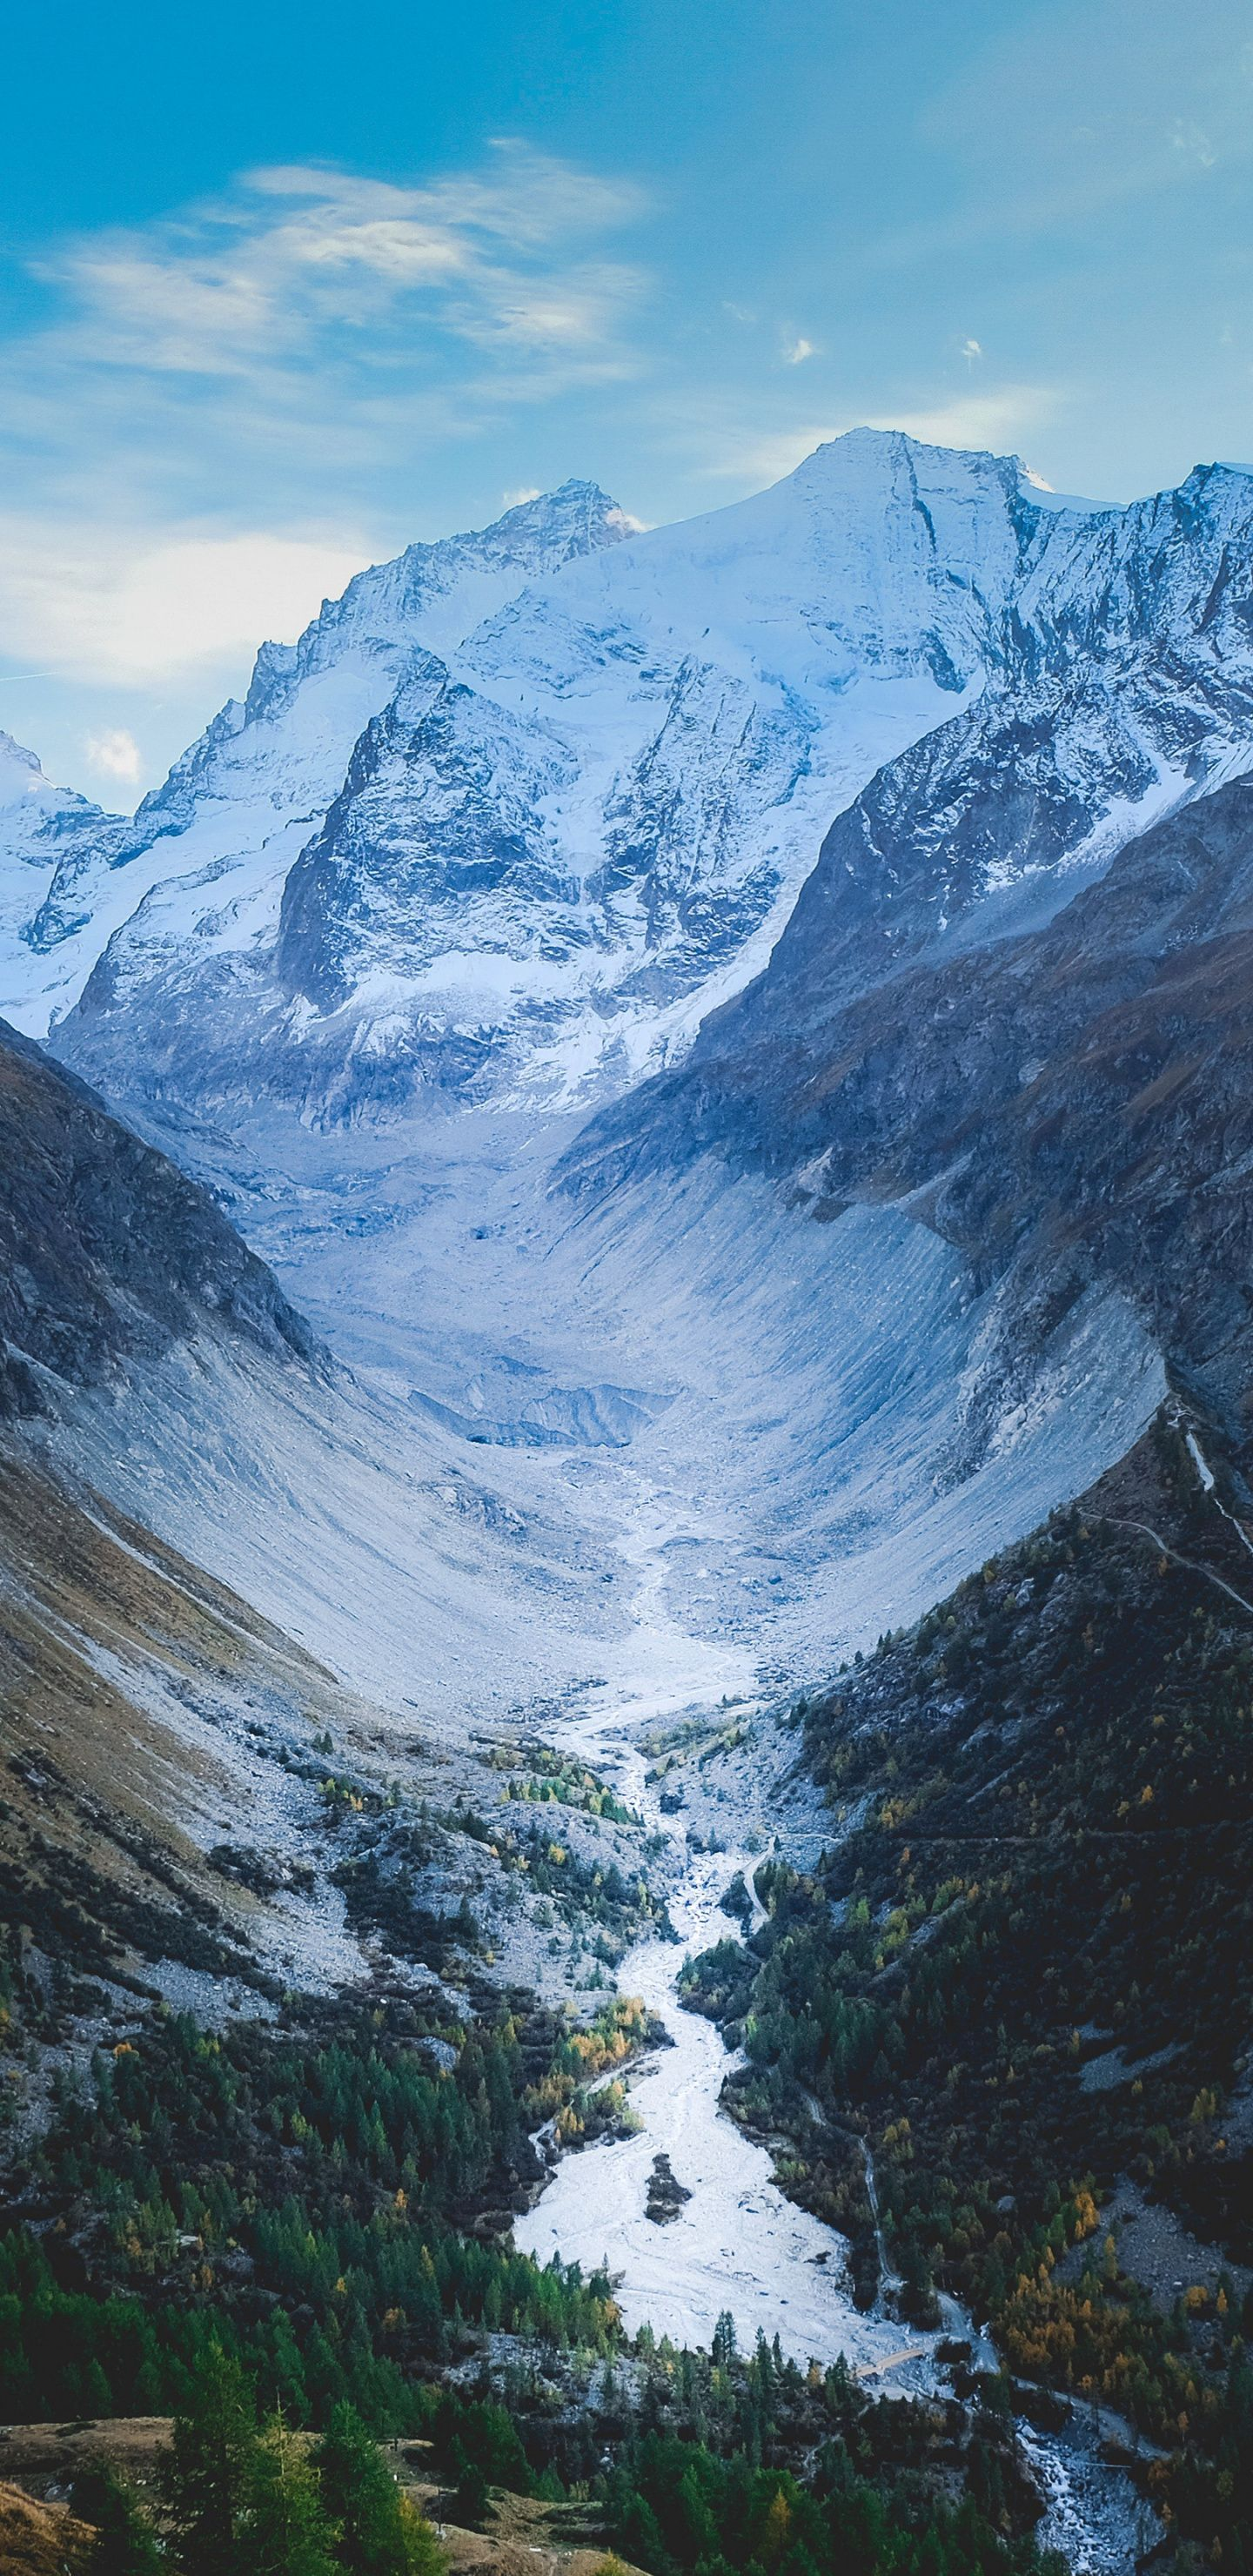 River Nature Swis Mountains Valley 1440x2960 Wallpaper Landscape Wallpaper Nature Nature Pictures